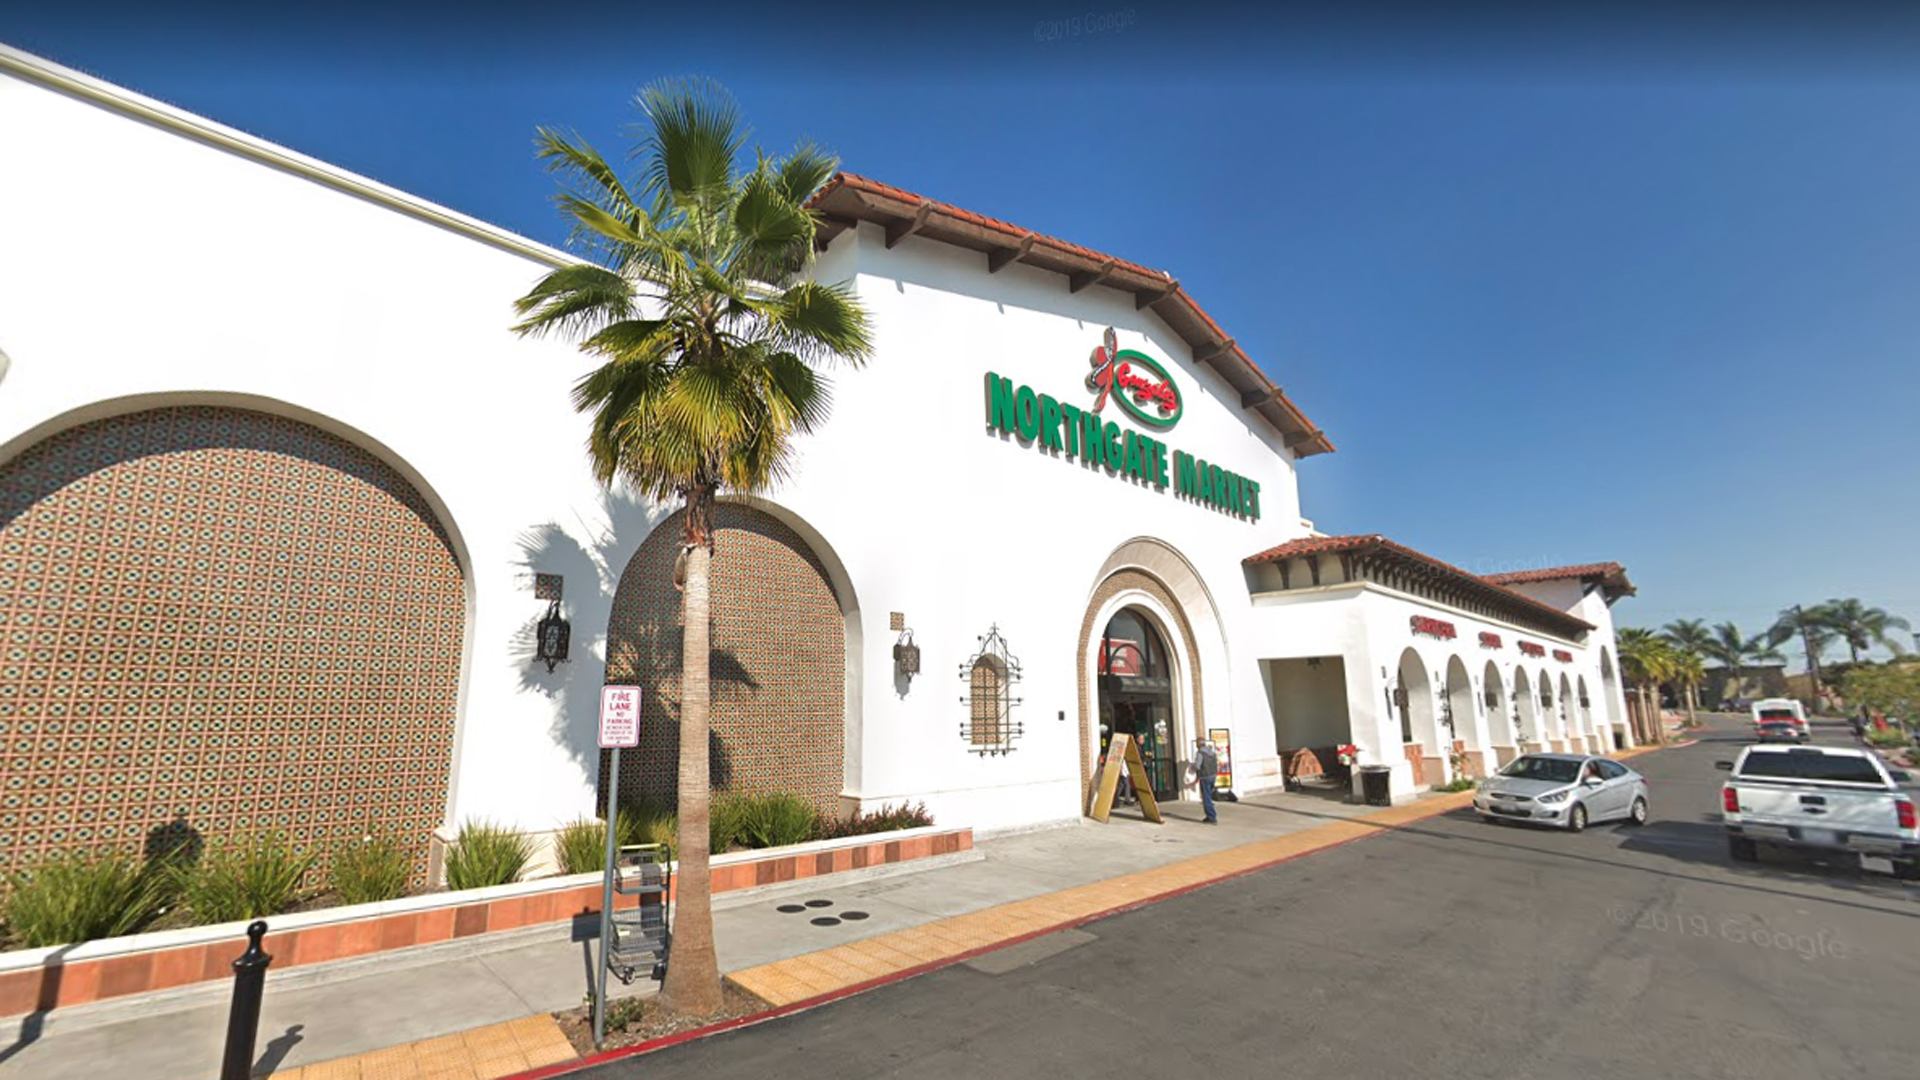 The Northgate Market in La Habra, as pictured in a Google Street View image.